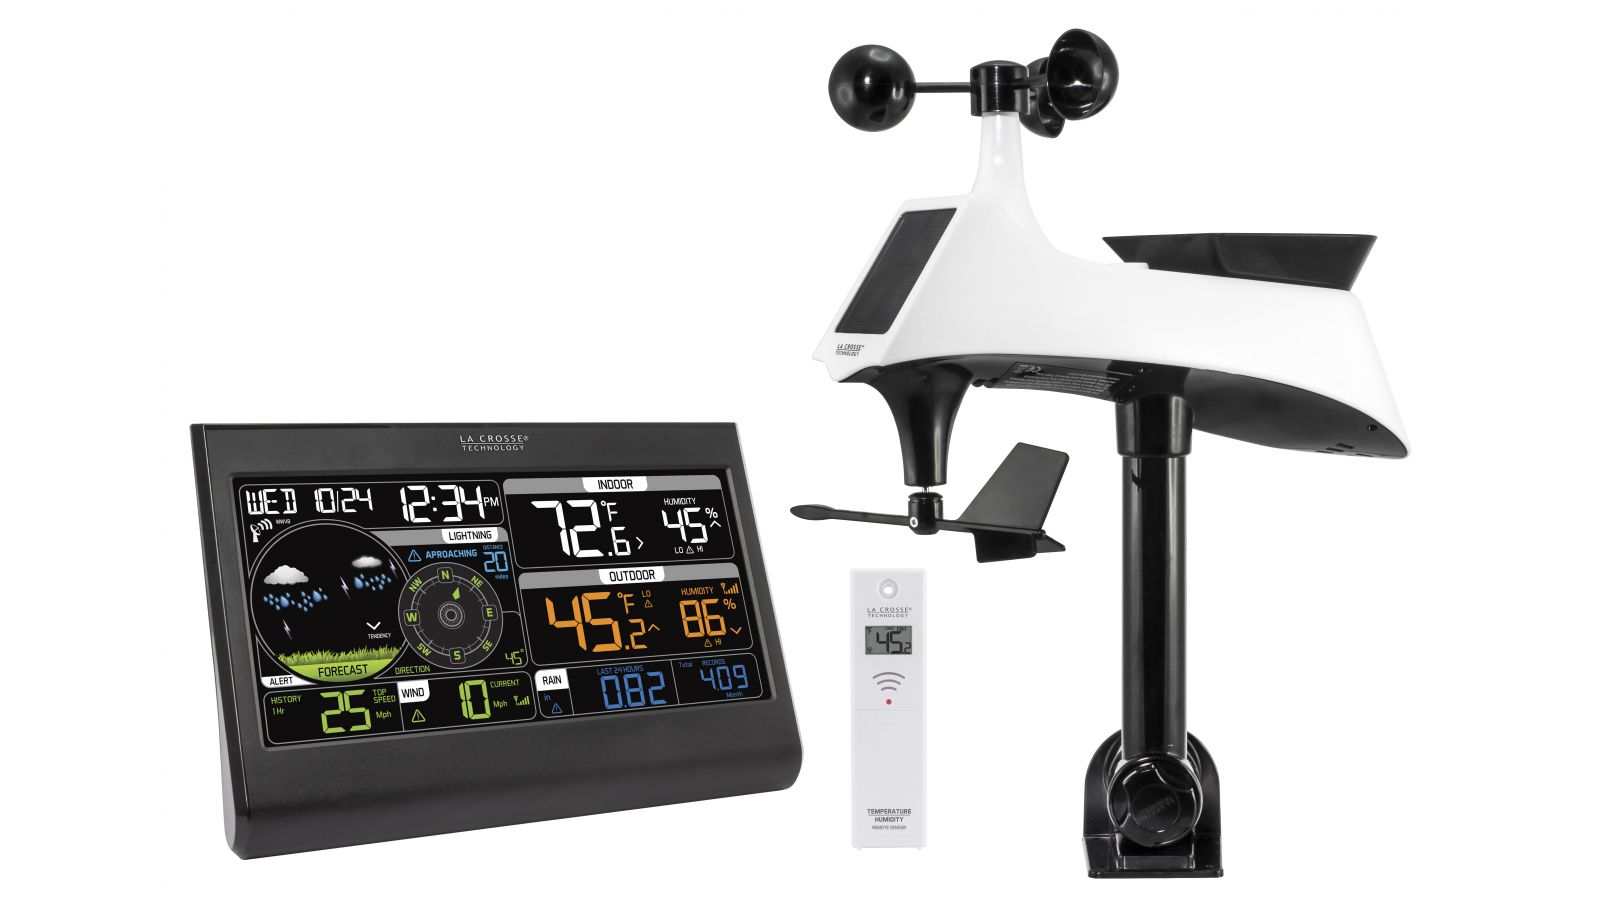 Professional Weather Station with Lightning Detector